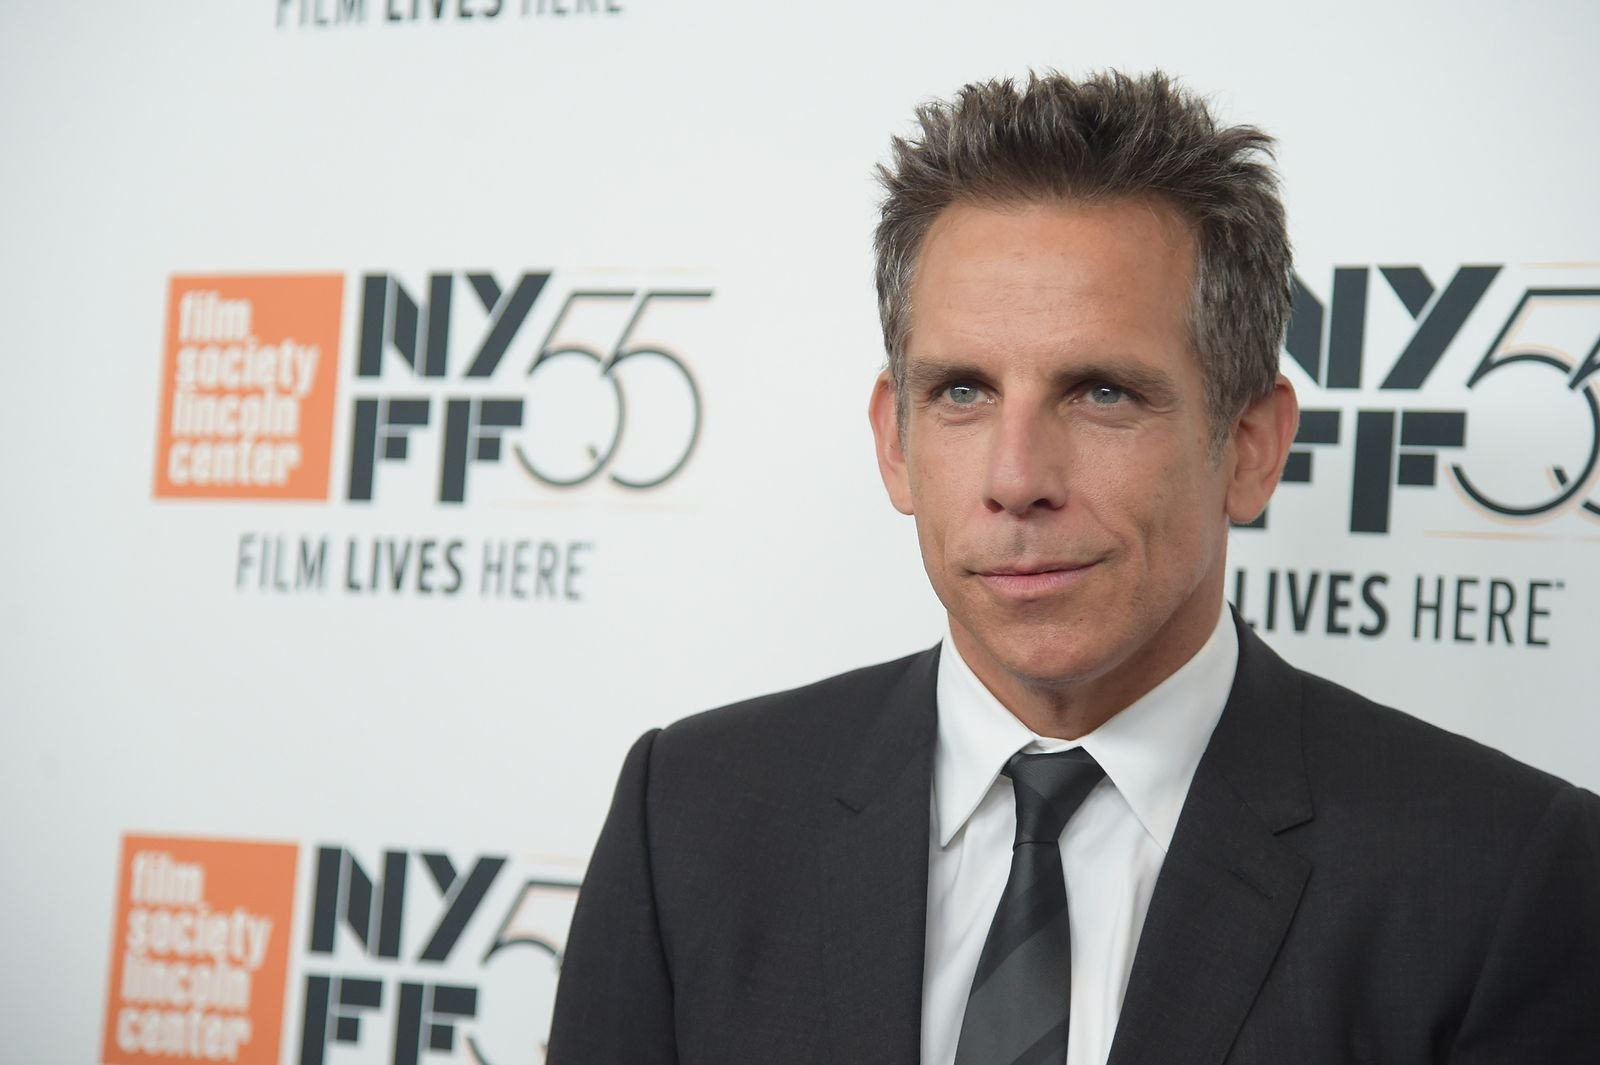 Ben Stiller at the New York Film Festival premiere of The Meyerowitz Stories (New and Selected) at Alice Tully Hall on October 1, 2017 in New York City | Photo: Getty Images